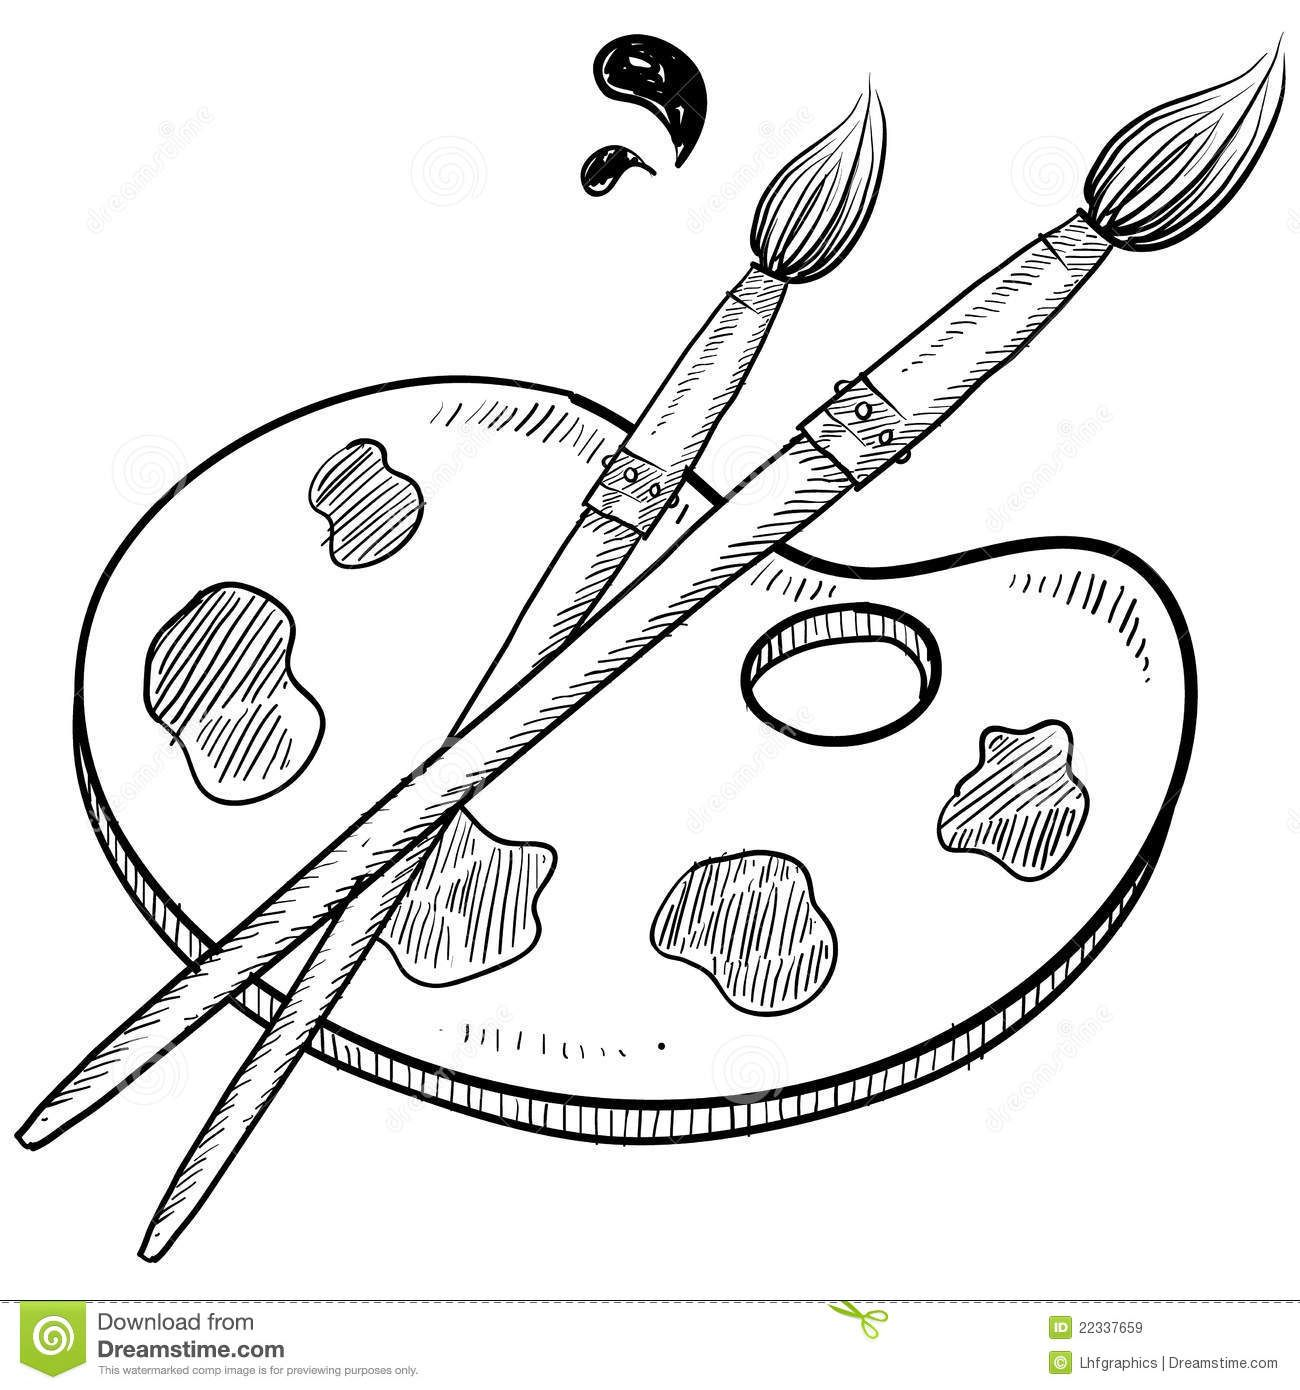 paintbrush clipart black and white.